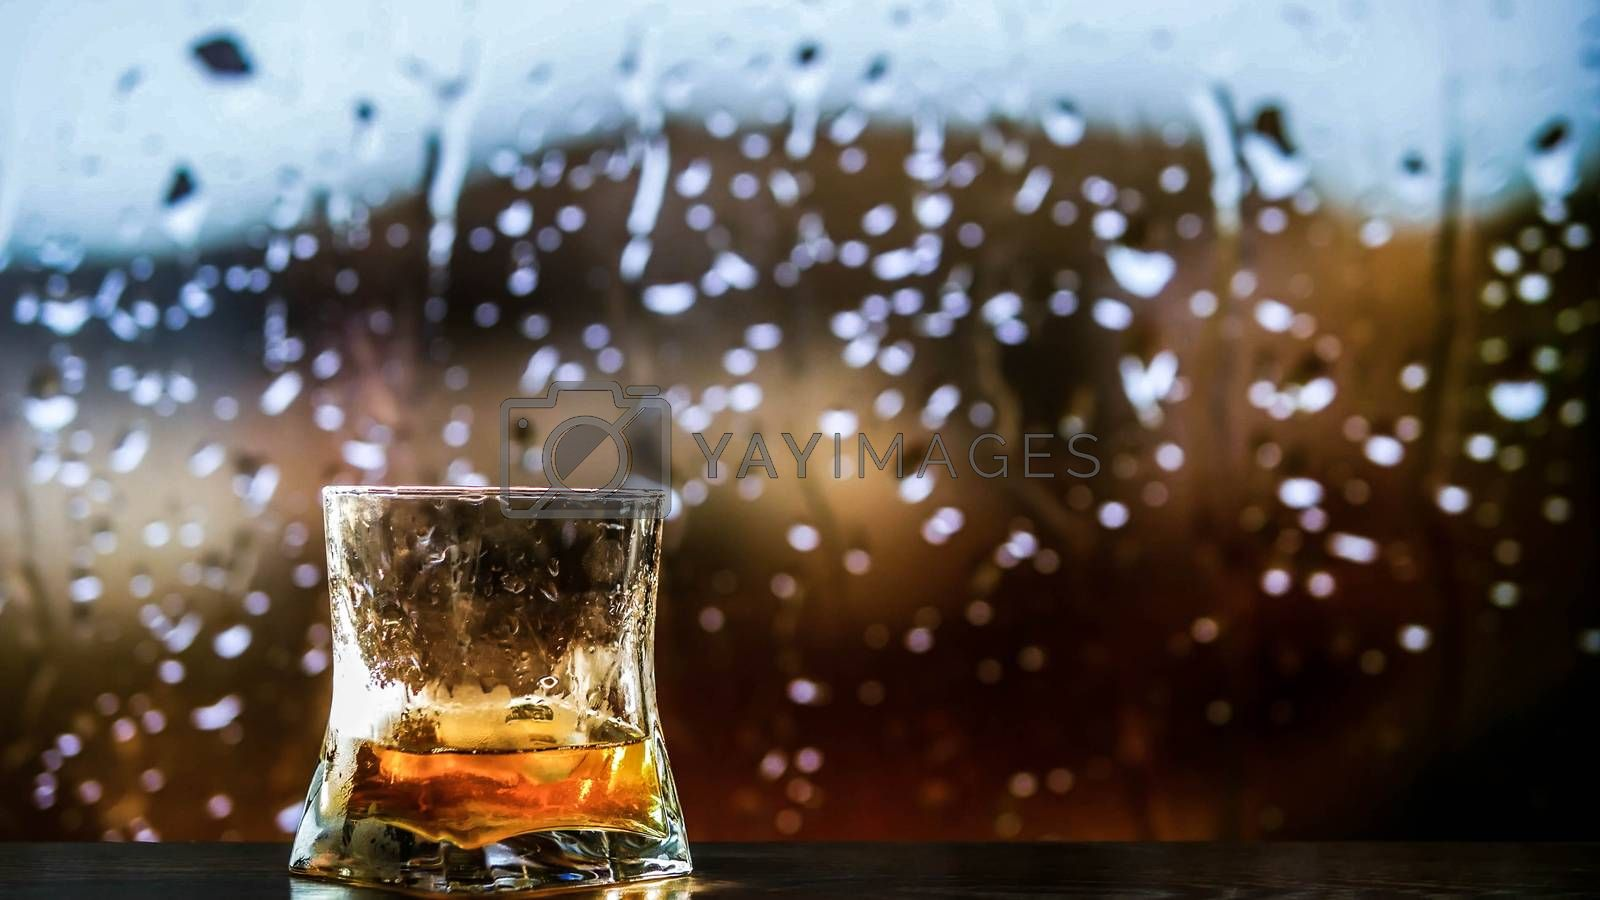 Royalty free image of A glass of whiskey,brandy on the counter,an alcoholic drink in a glass of whiskey.Against the background of raindrops. by Andriii_Klapkoo